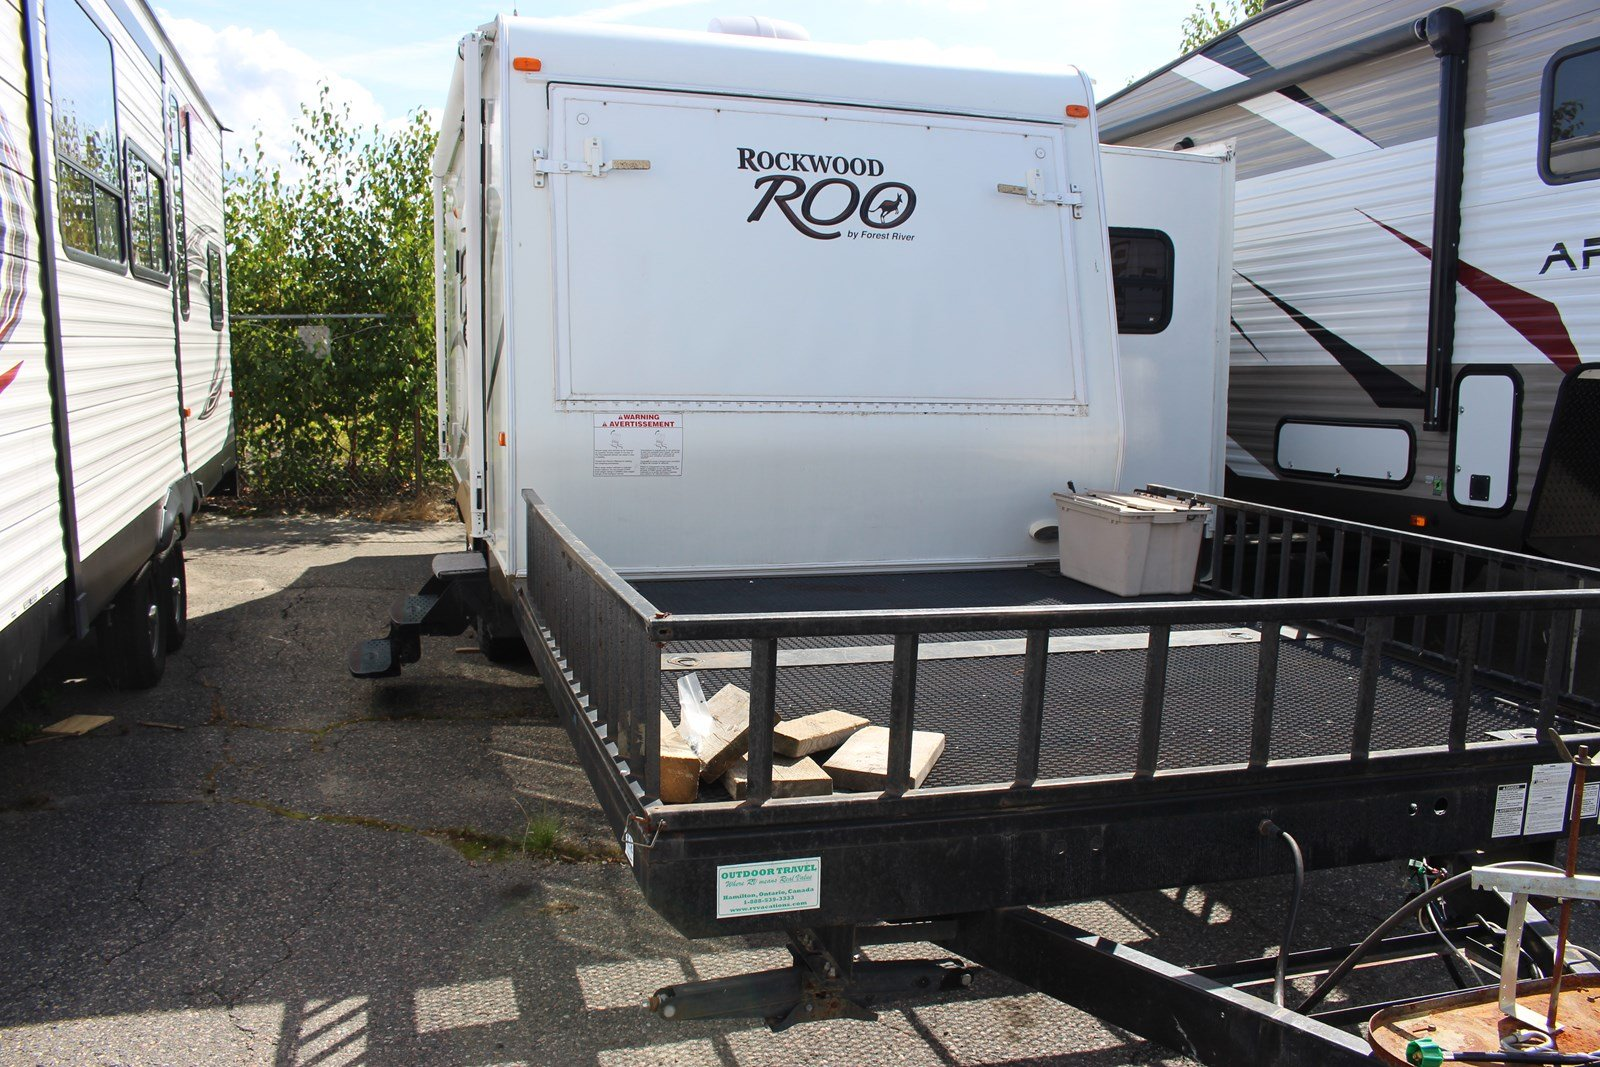 Pre-Owned 2012 ROCKWOOD ROO 21SSL